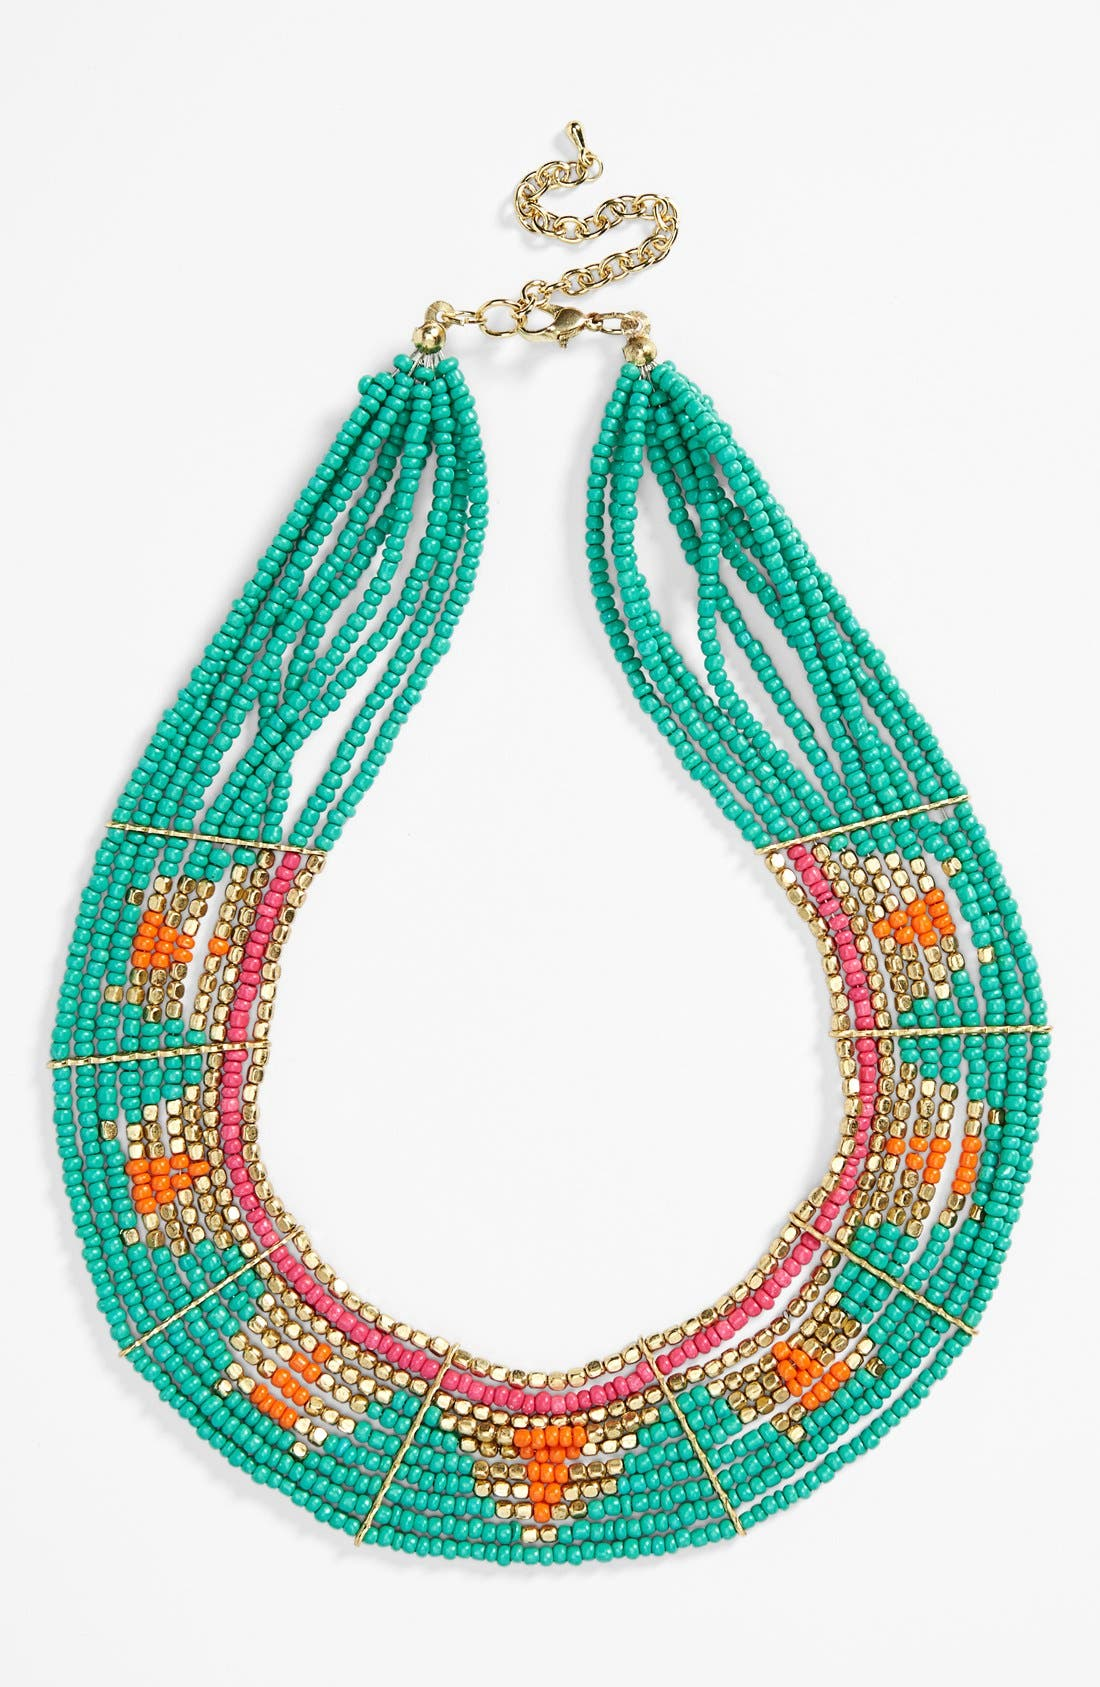 Main Image - BP. Geometric Seed Bead Collar Necklace